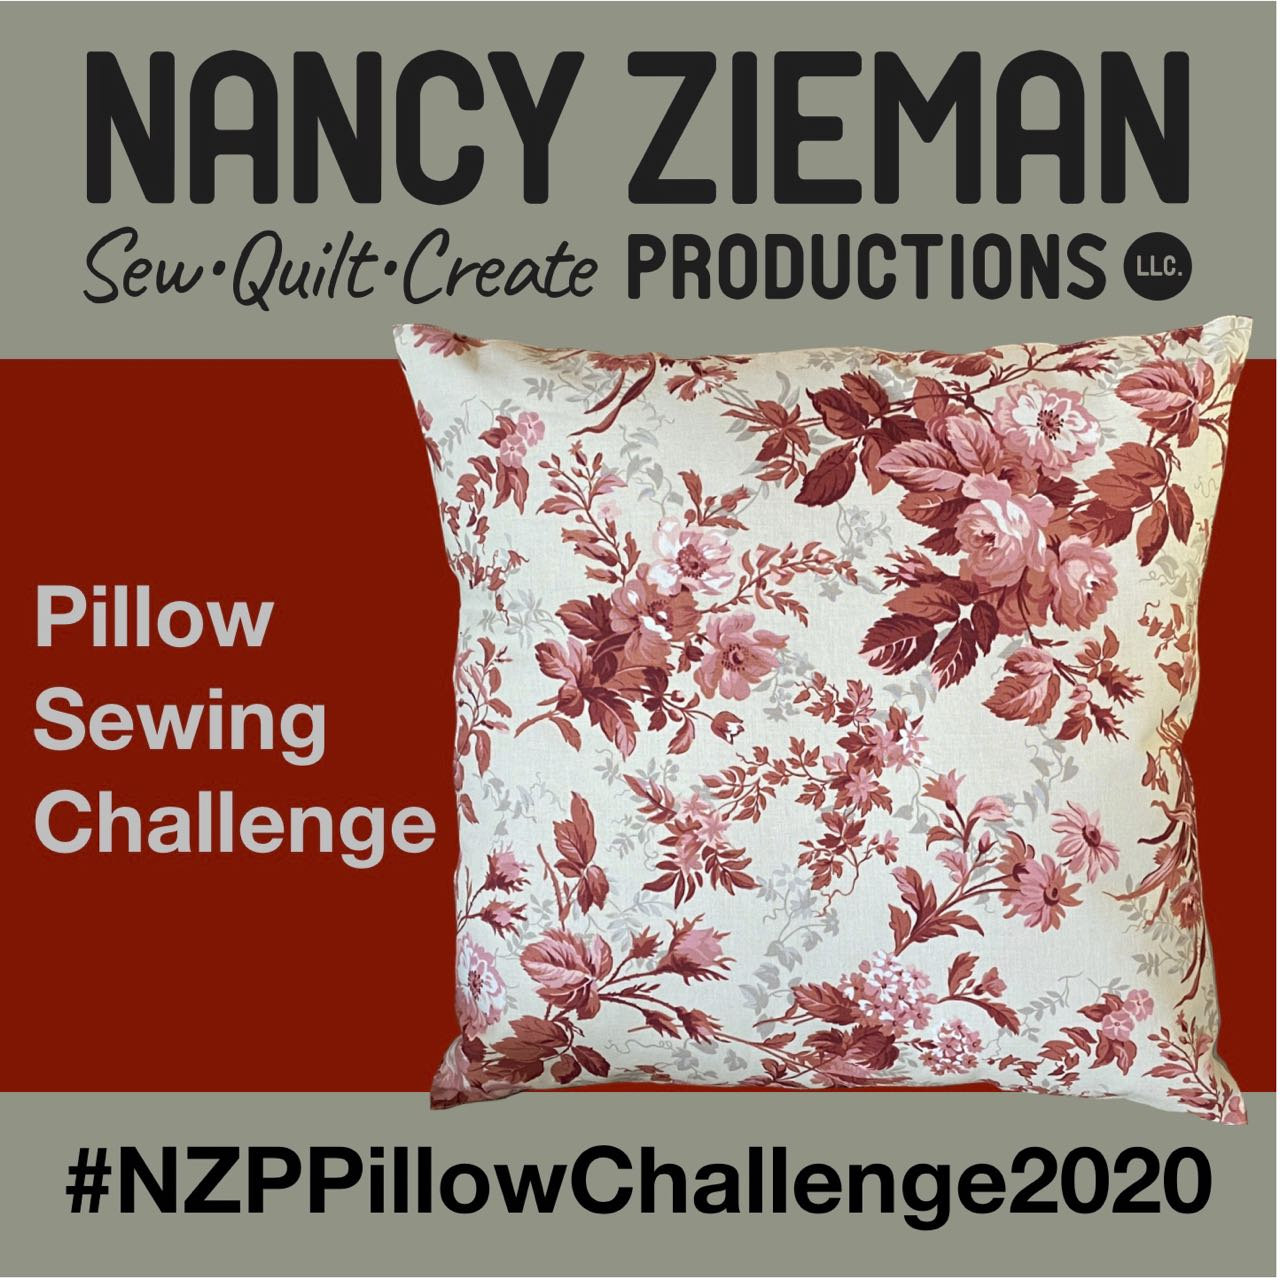 2020 NZP Pillow Sewing Challenge